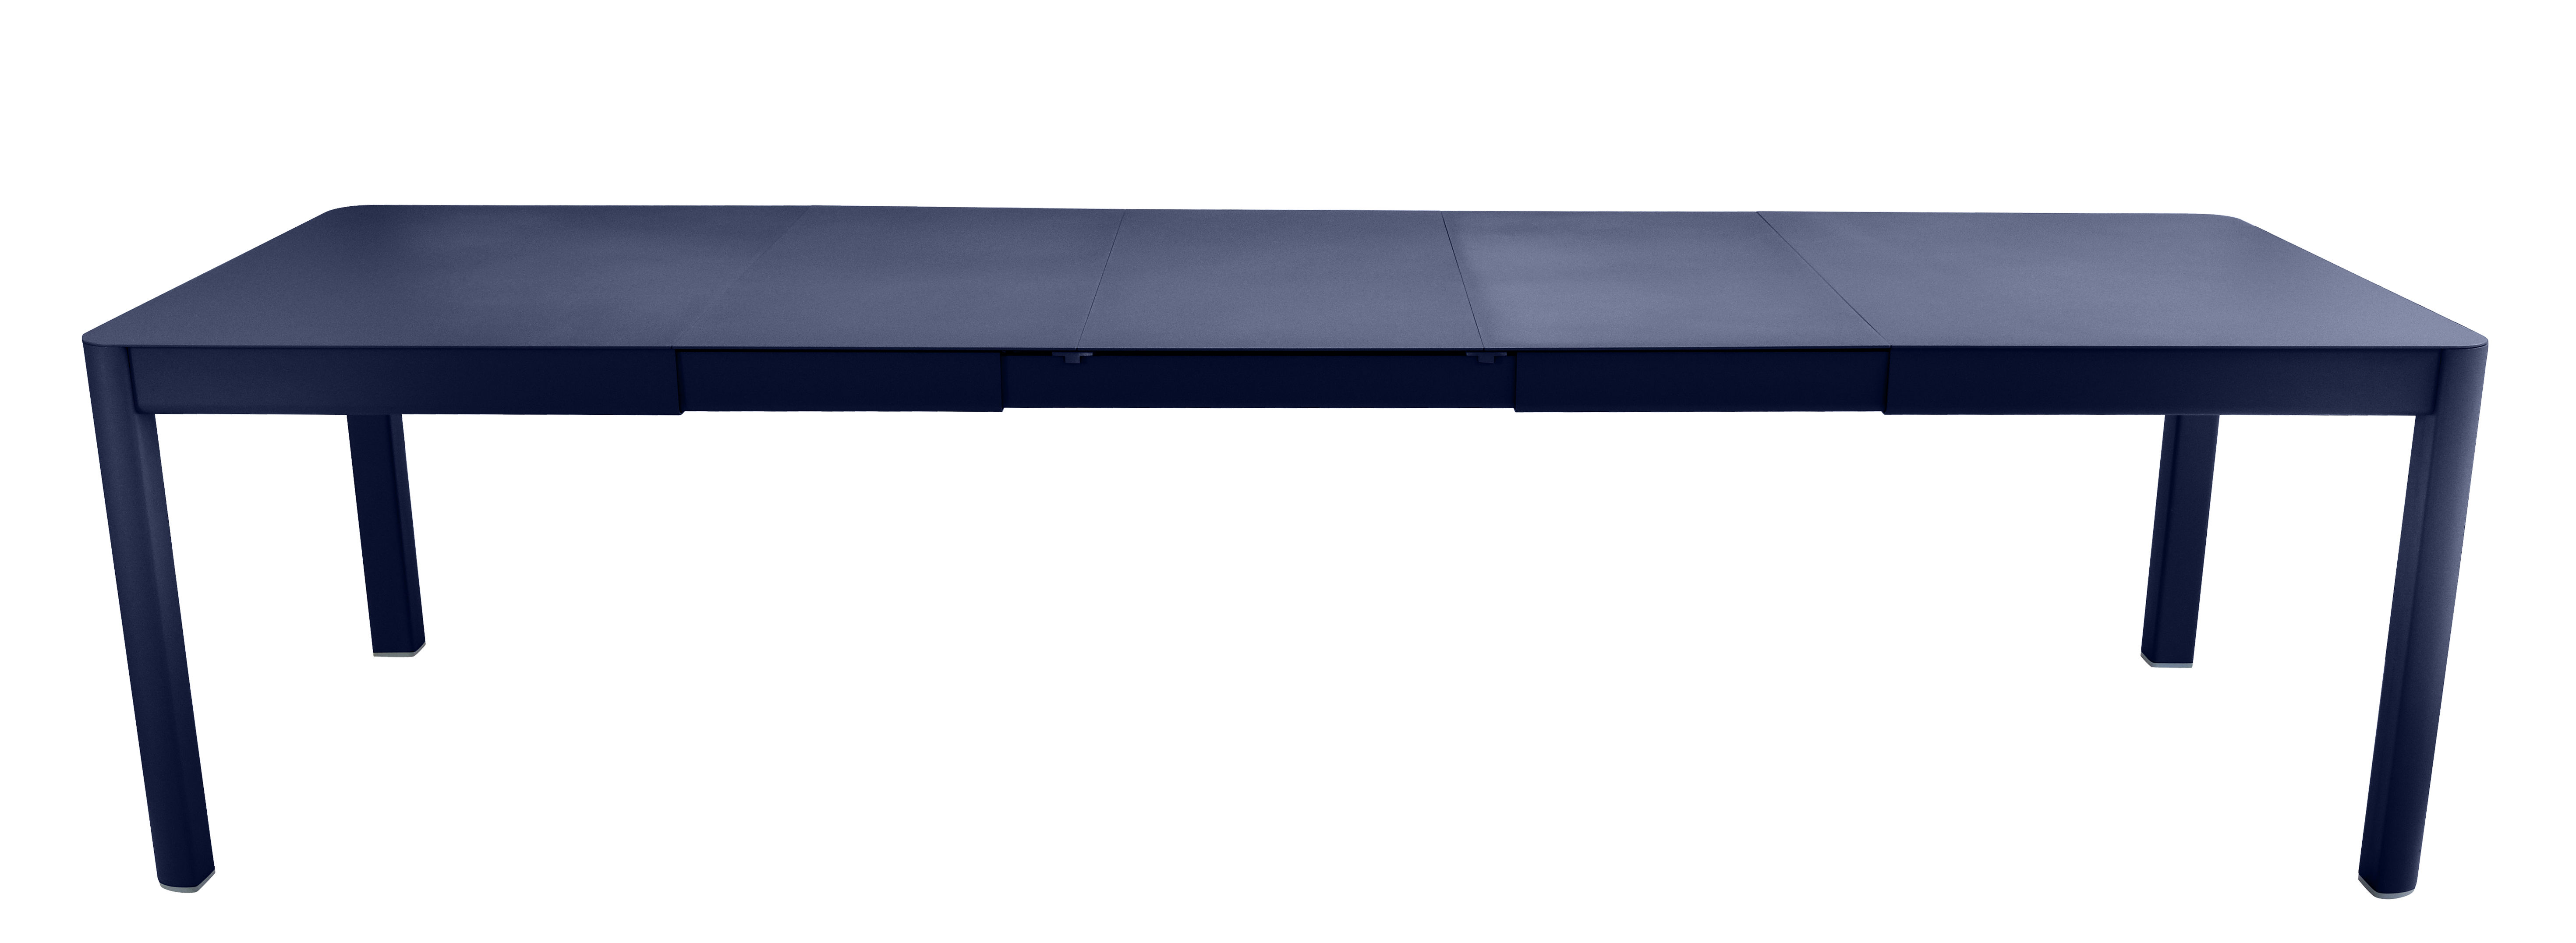 Outdoor - Garden Tables - Ribambelle XL Extending table - / L 149 to 290  - 6 to 14 people by Fermob - Ocean Blue - Aluminium